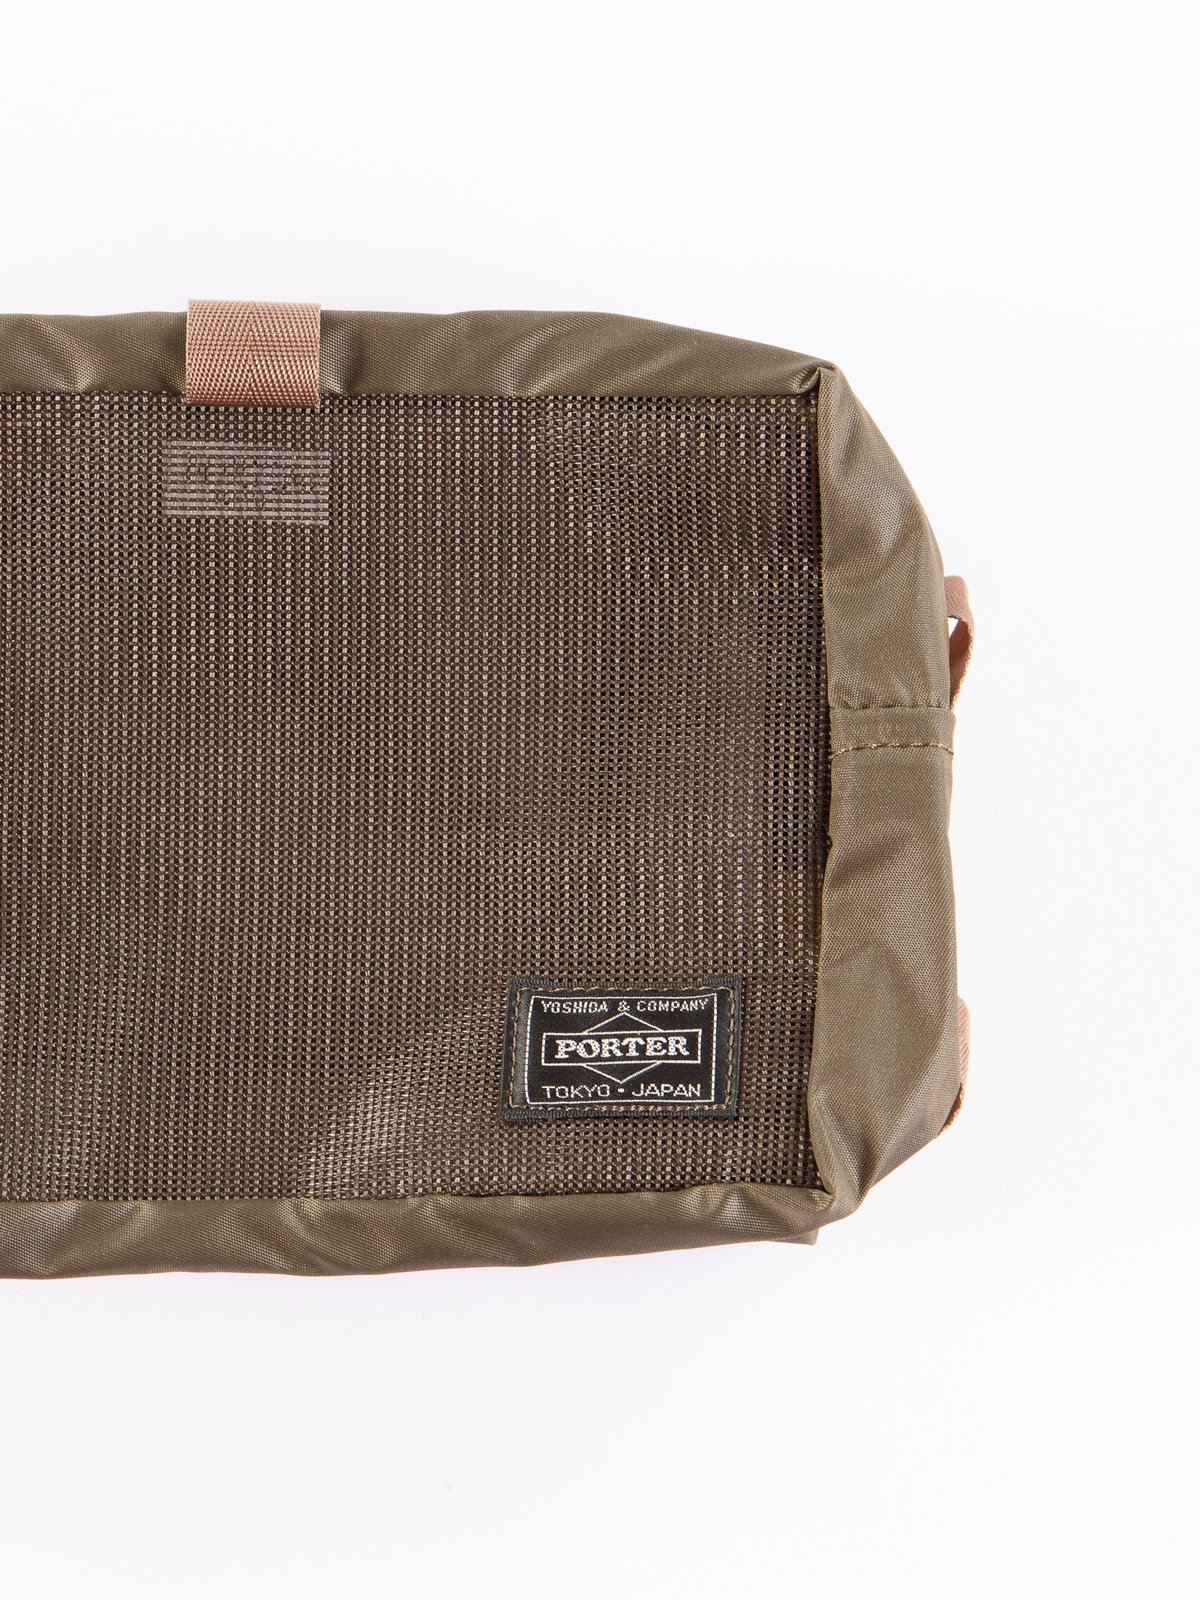 Olive Drab Snack Pack 09810 Pouch Small - Image 2